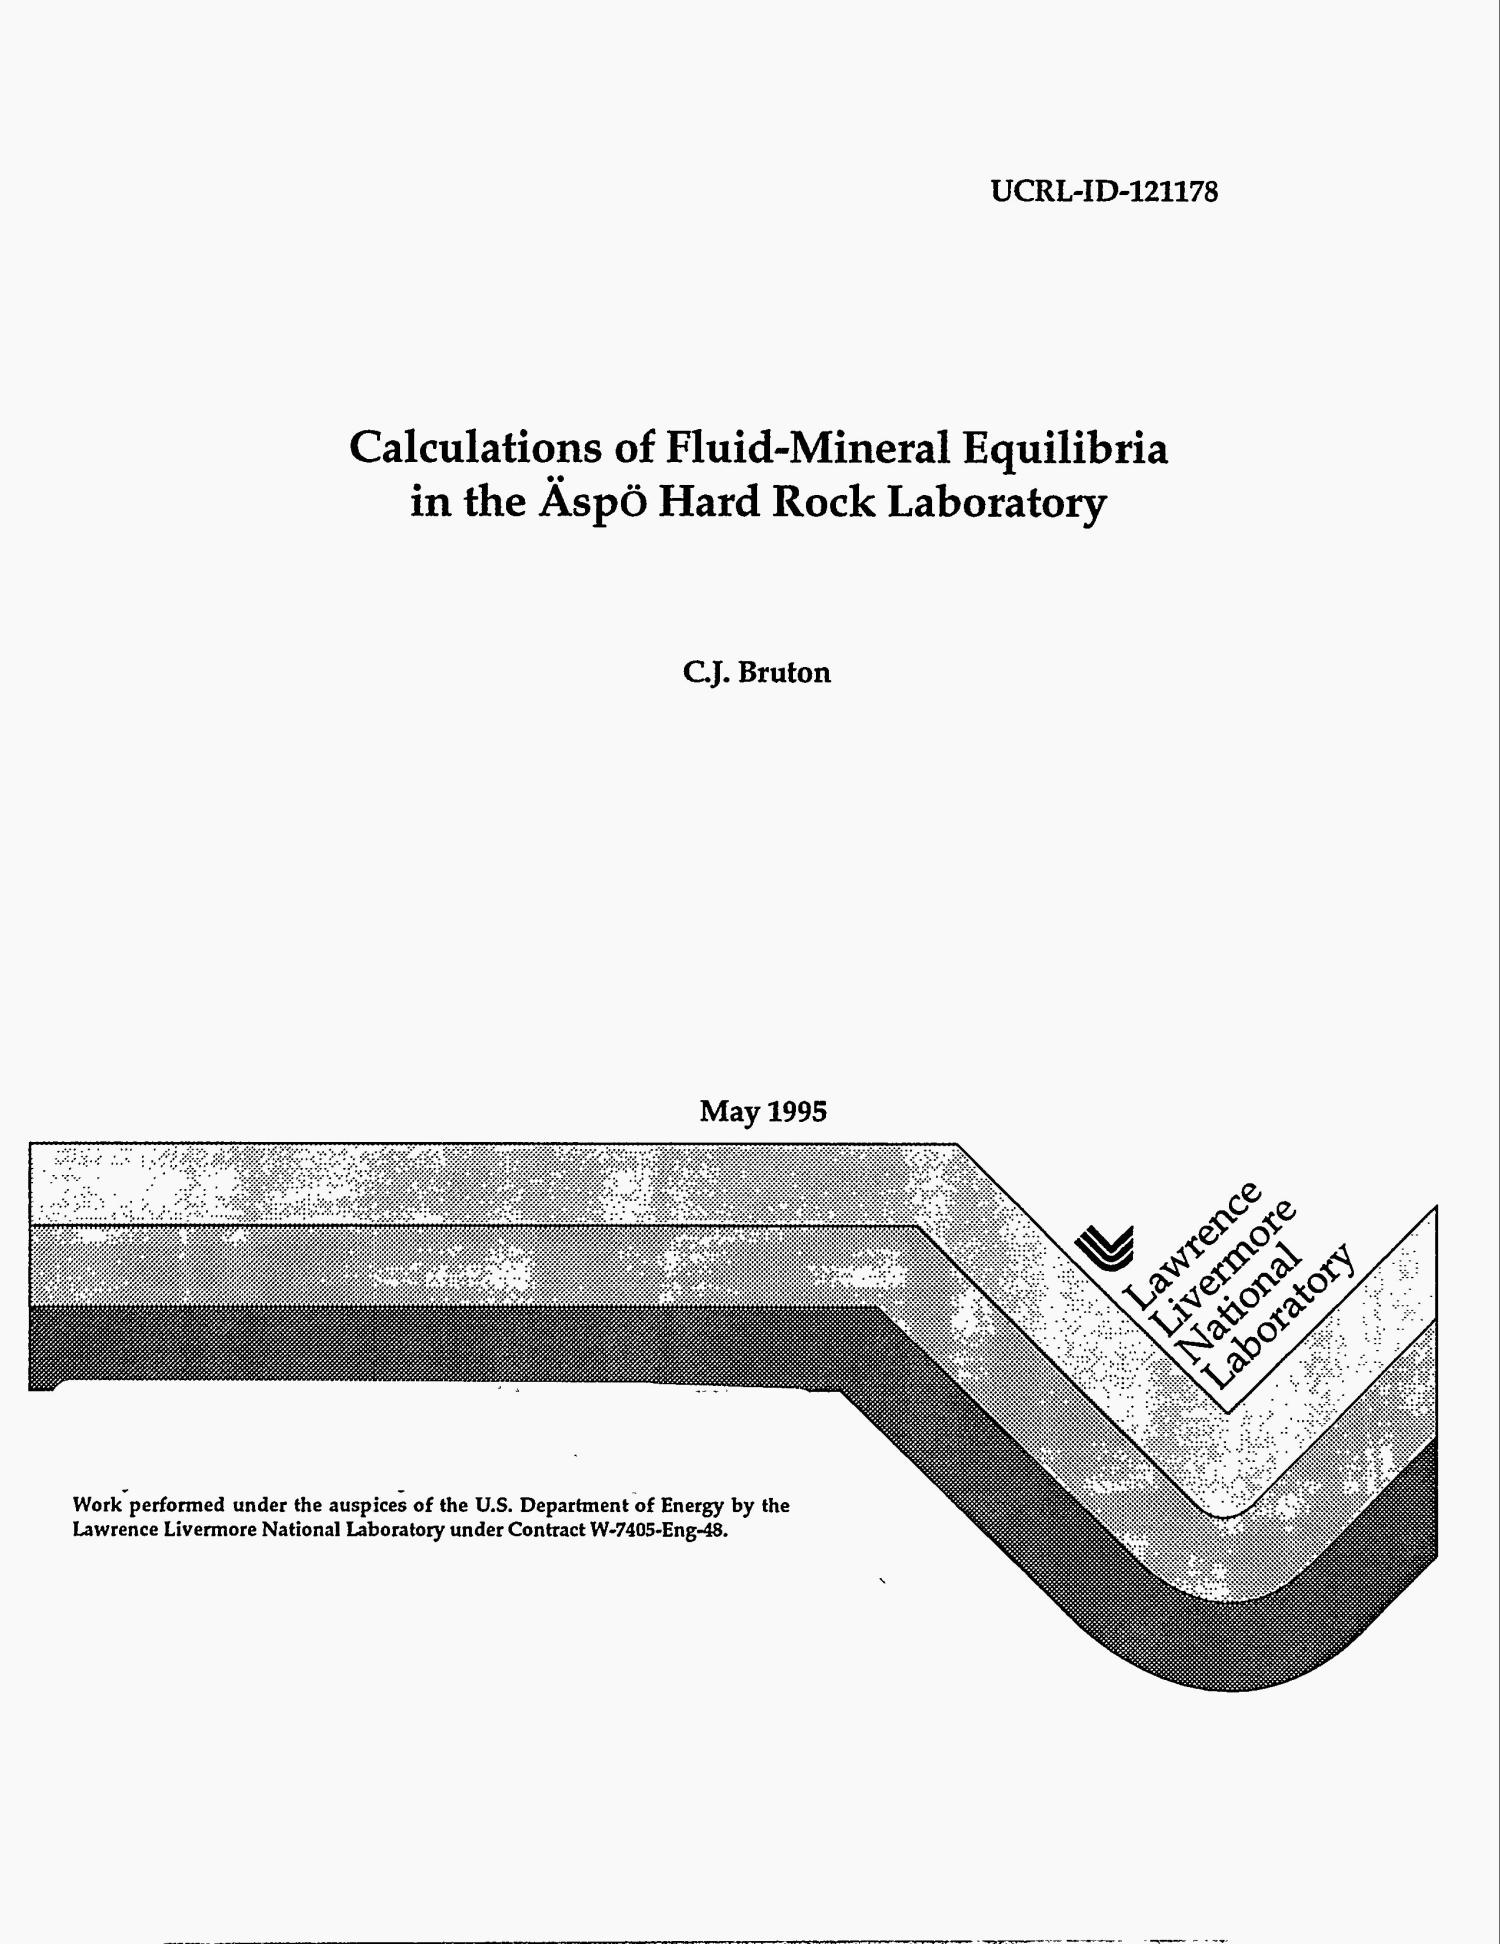 Calculations of fluid-mineral equilibria in the Aspo Hard Rock Laboratory                                                                                                      [Sequence #]: 1 of 13